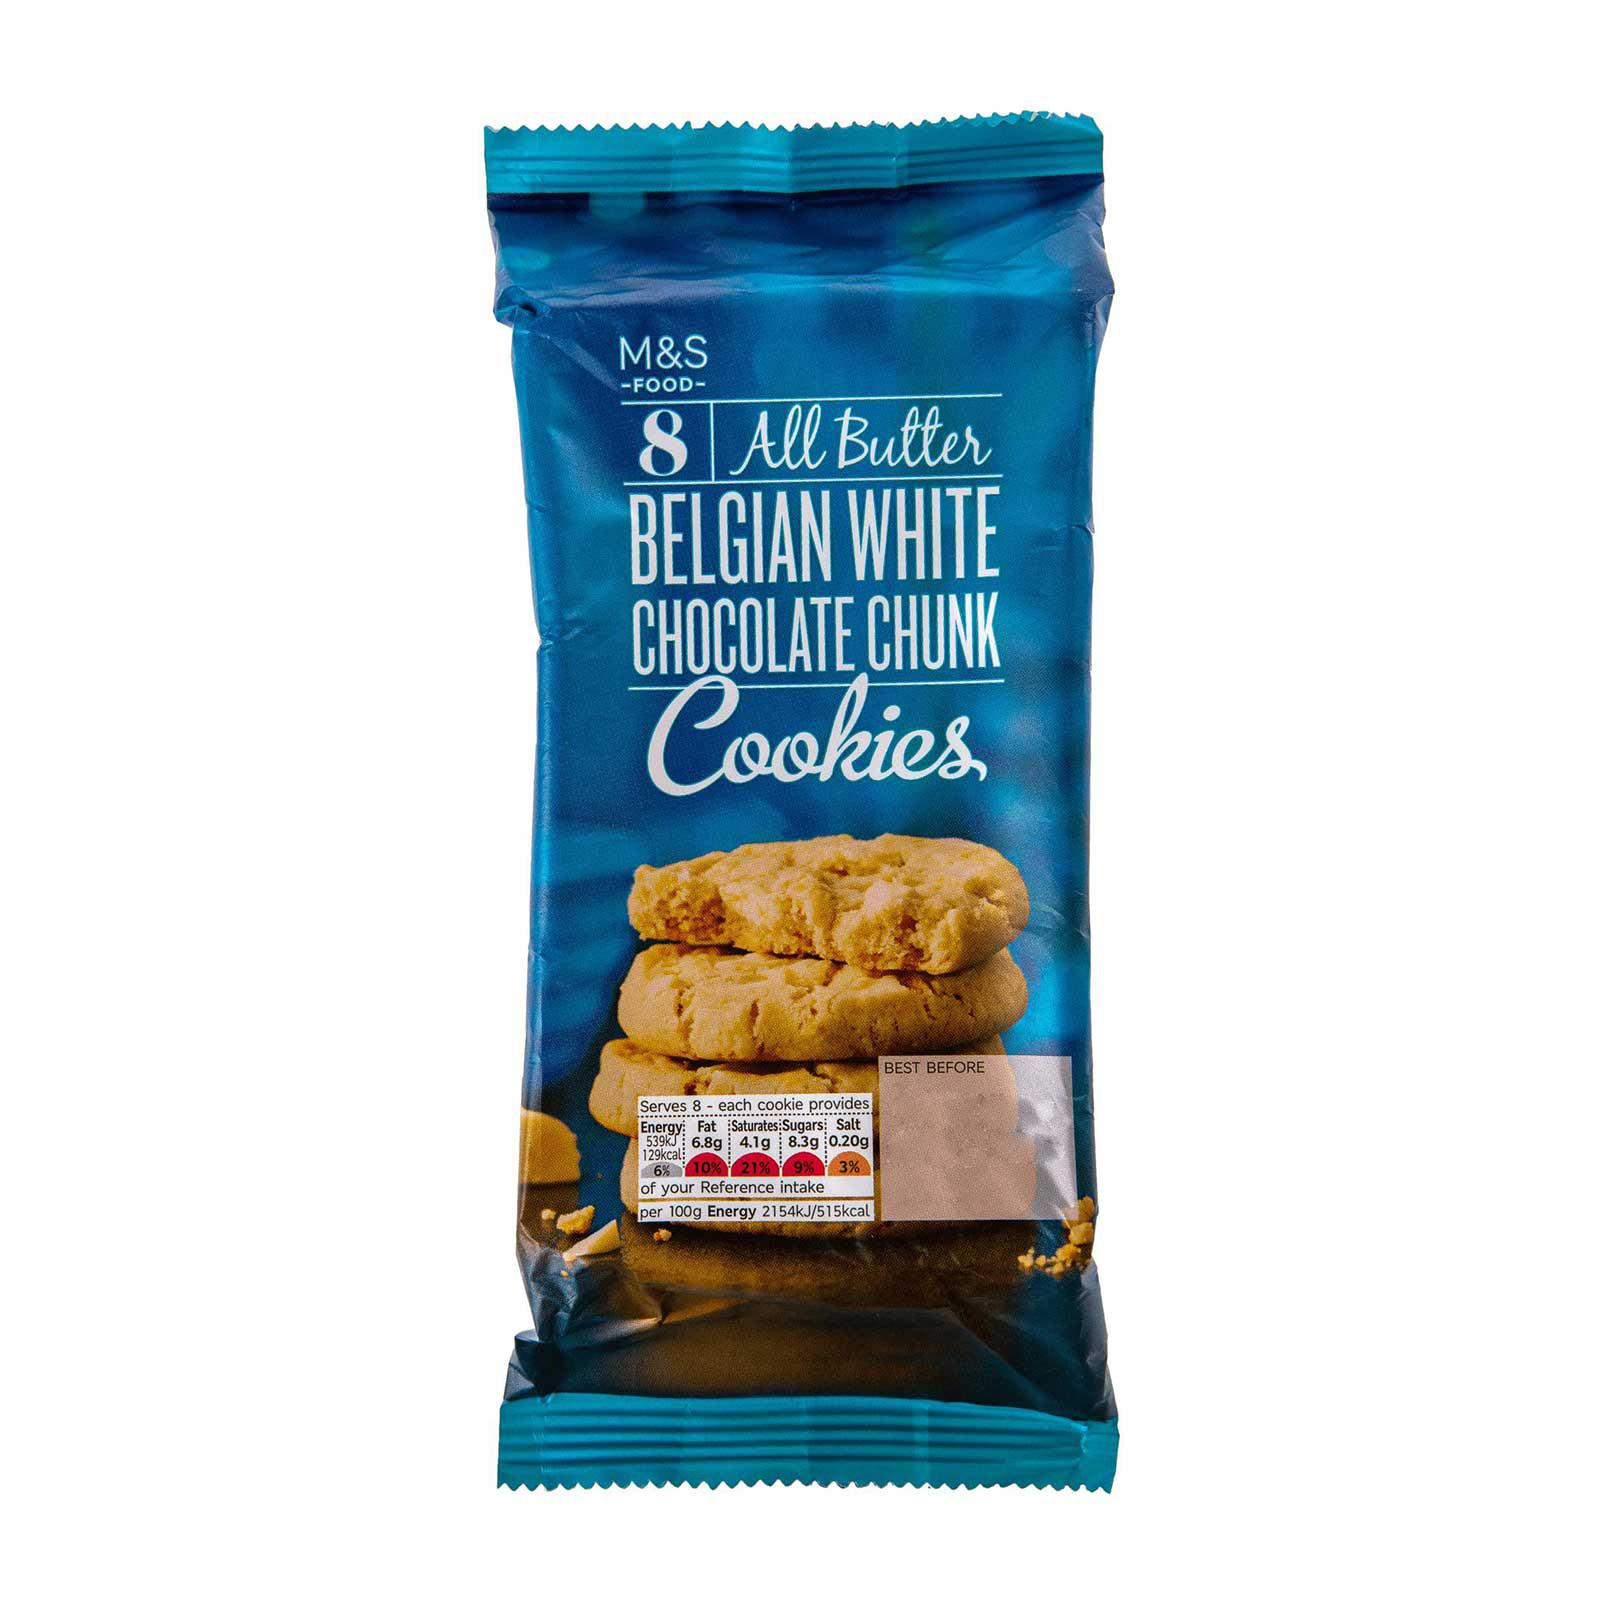 Marks & Spencer All Butter Belgian White Chocolate Chunk Cookies